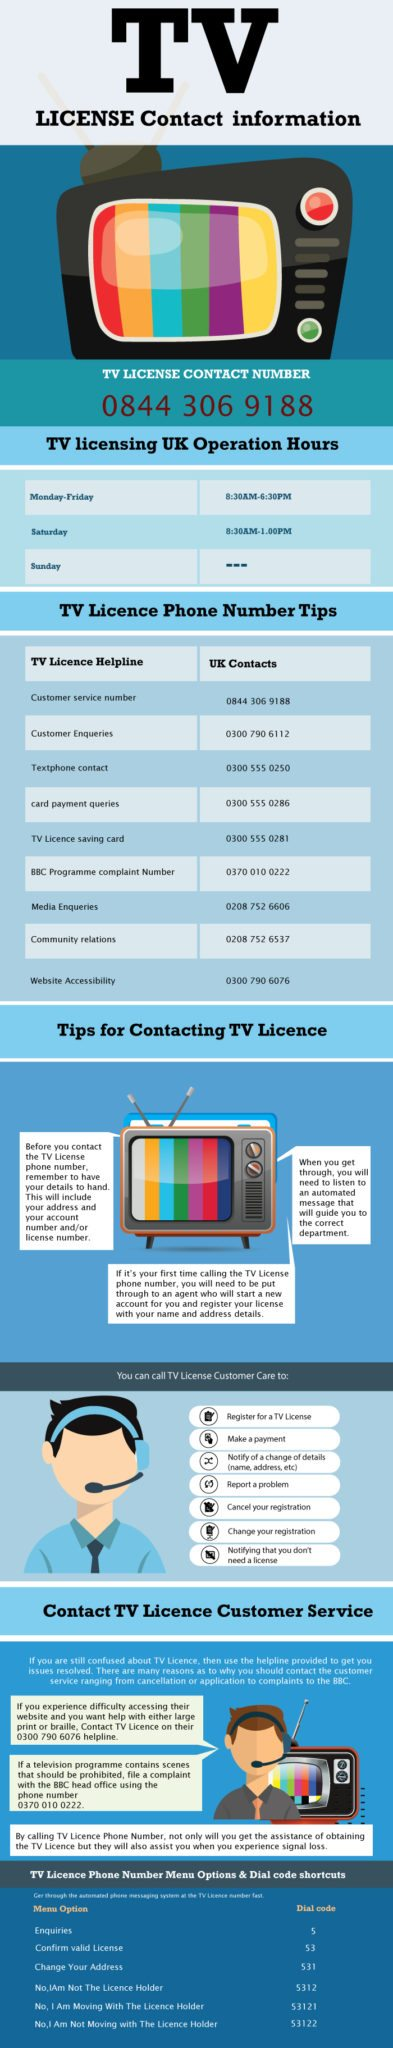 TV License Helpline